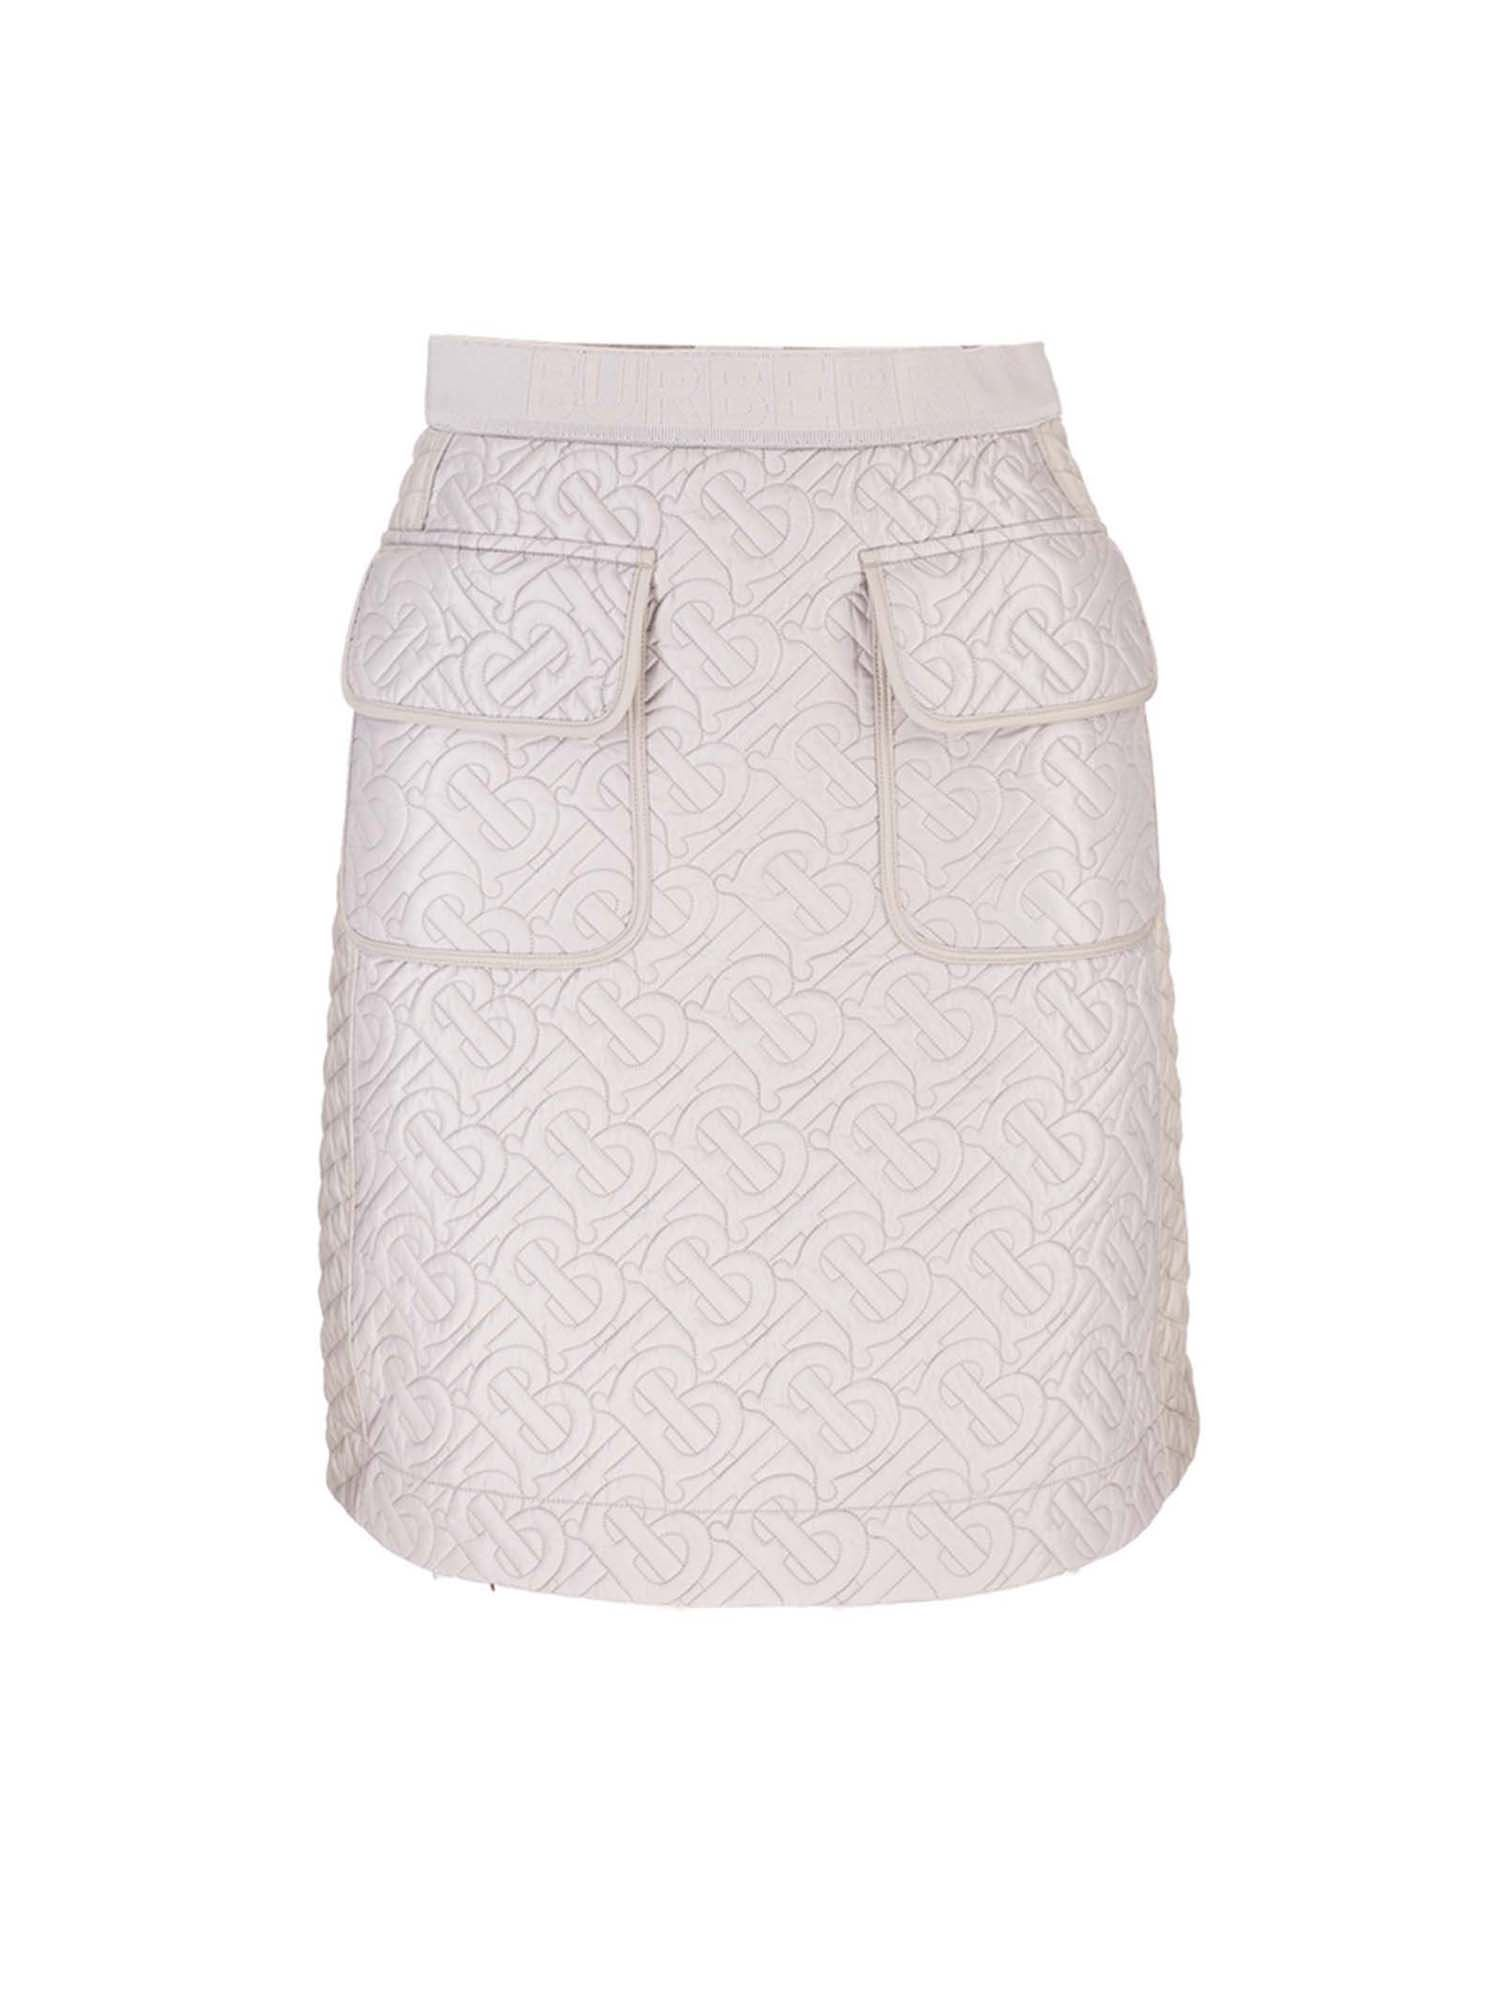 Burberry Linings QUILTED LOGO SKIRT IN GREY